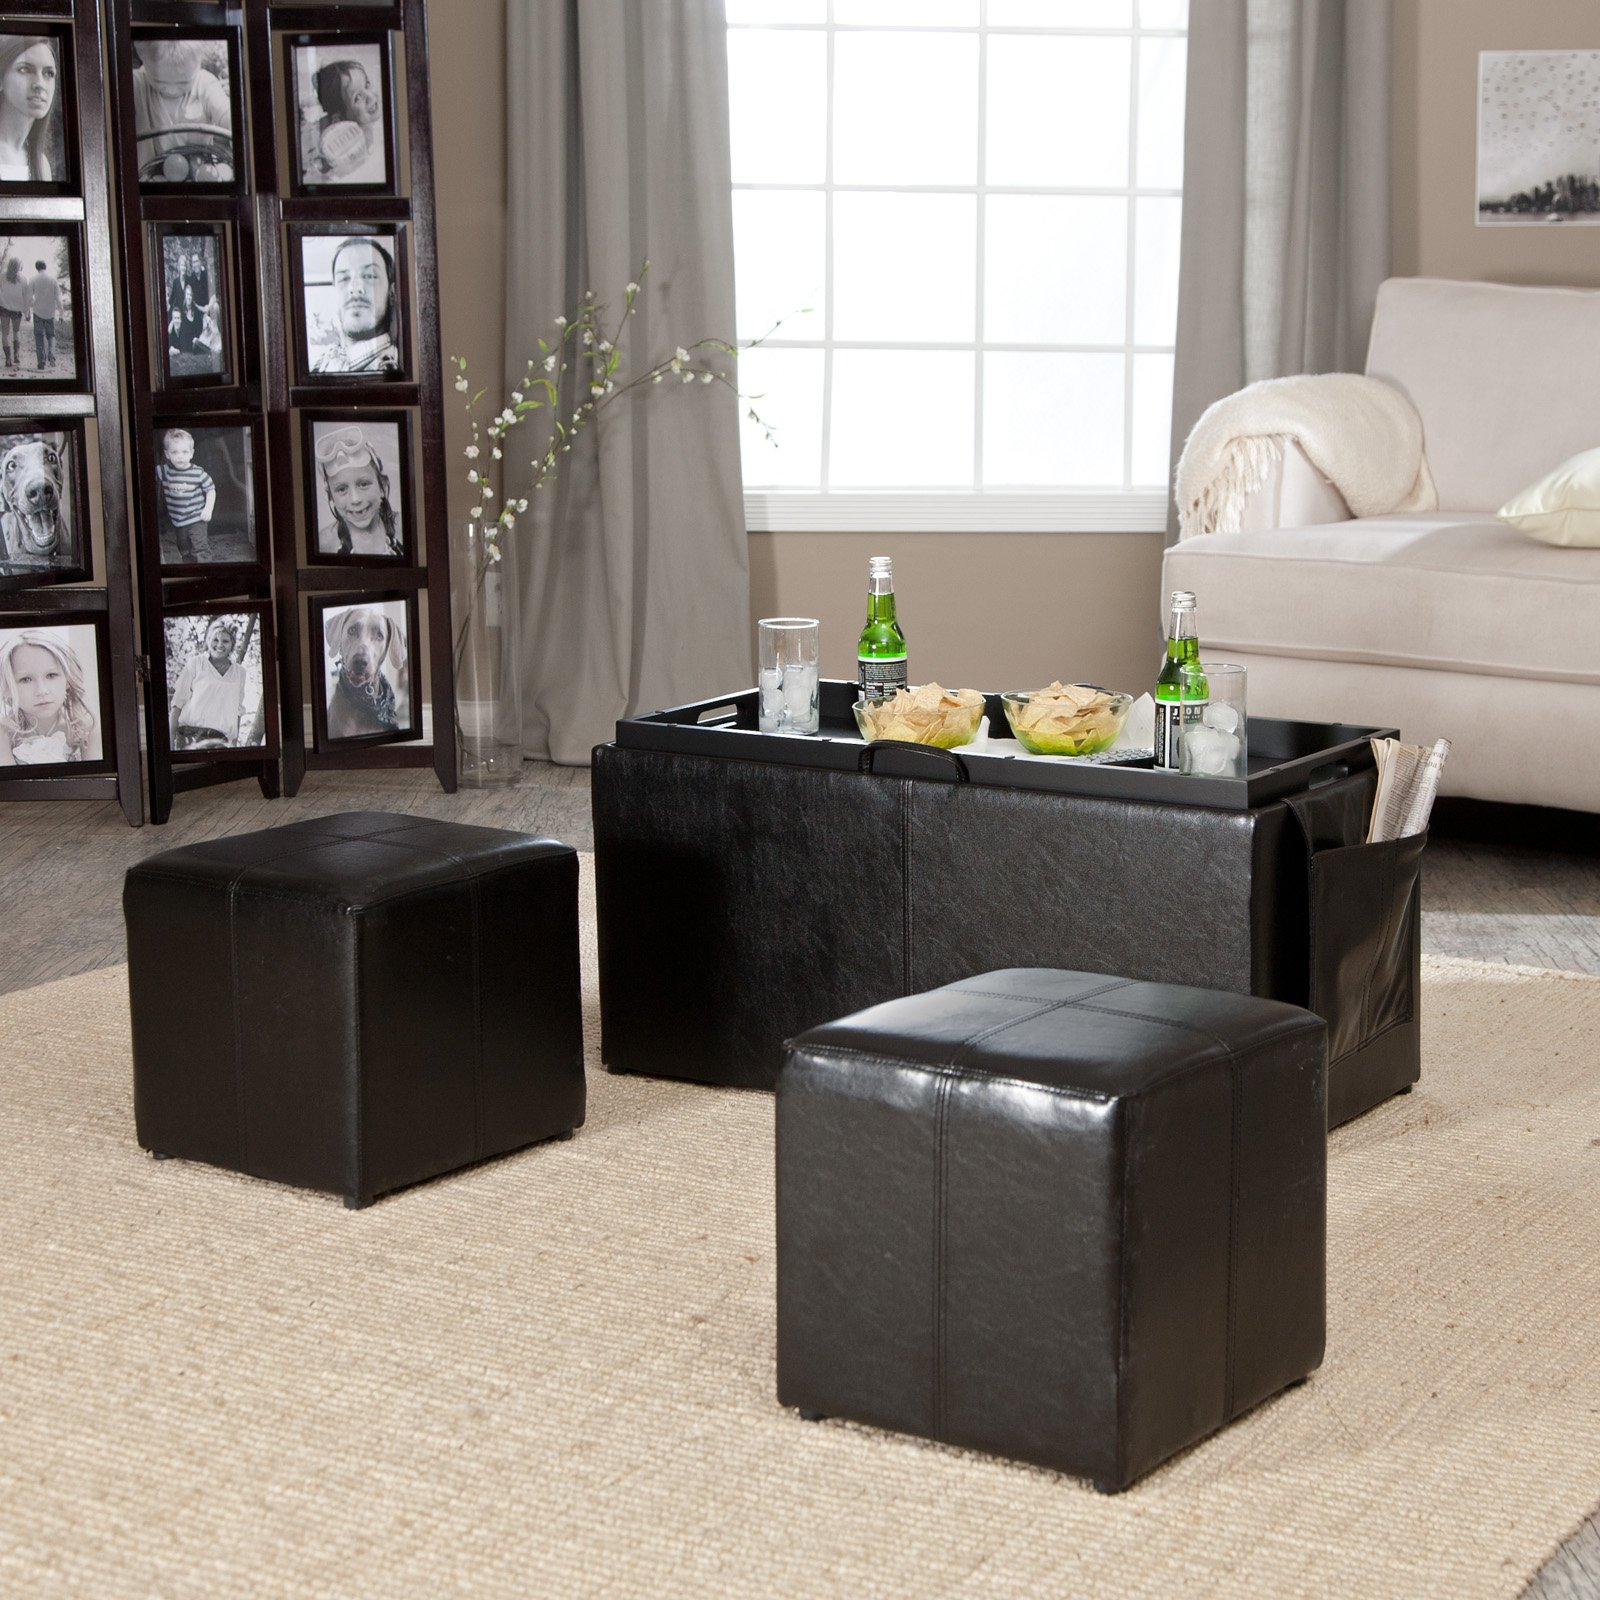 Hartley Coffee Table Storage Ottoman with TraySide Ottomans